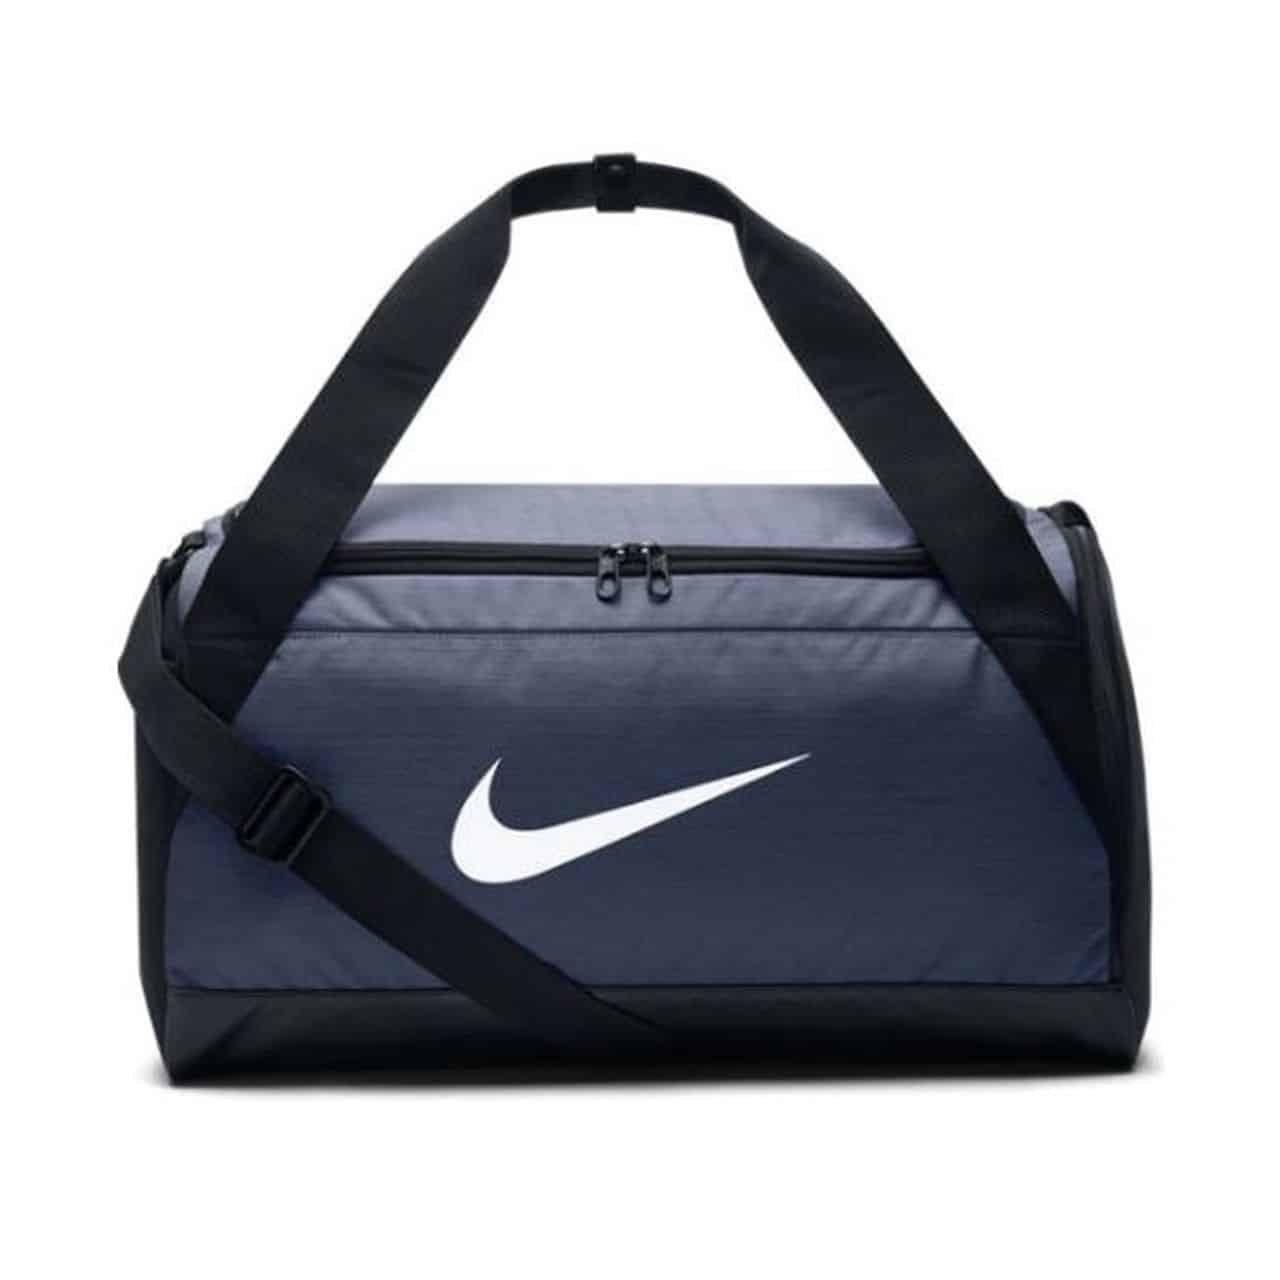 GEANTA ORIGINALA NIKE TRAINING DUFFEL BAG (S) - BA5335 410